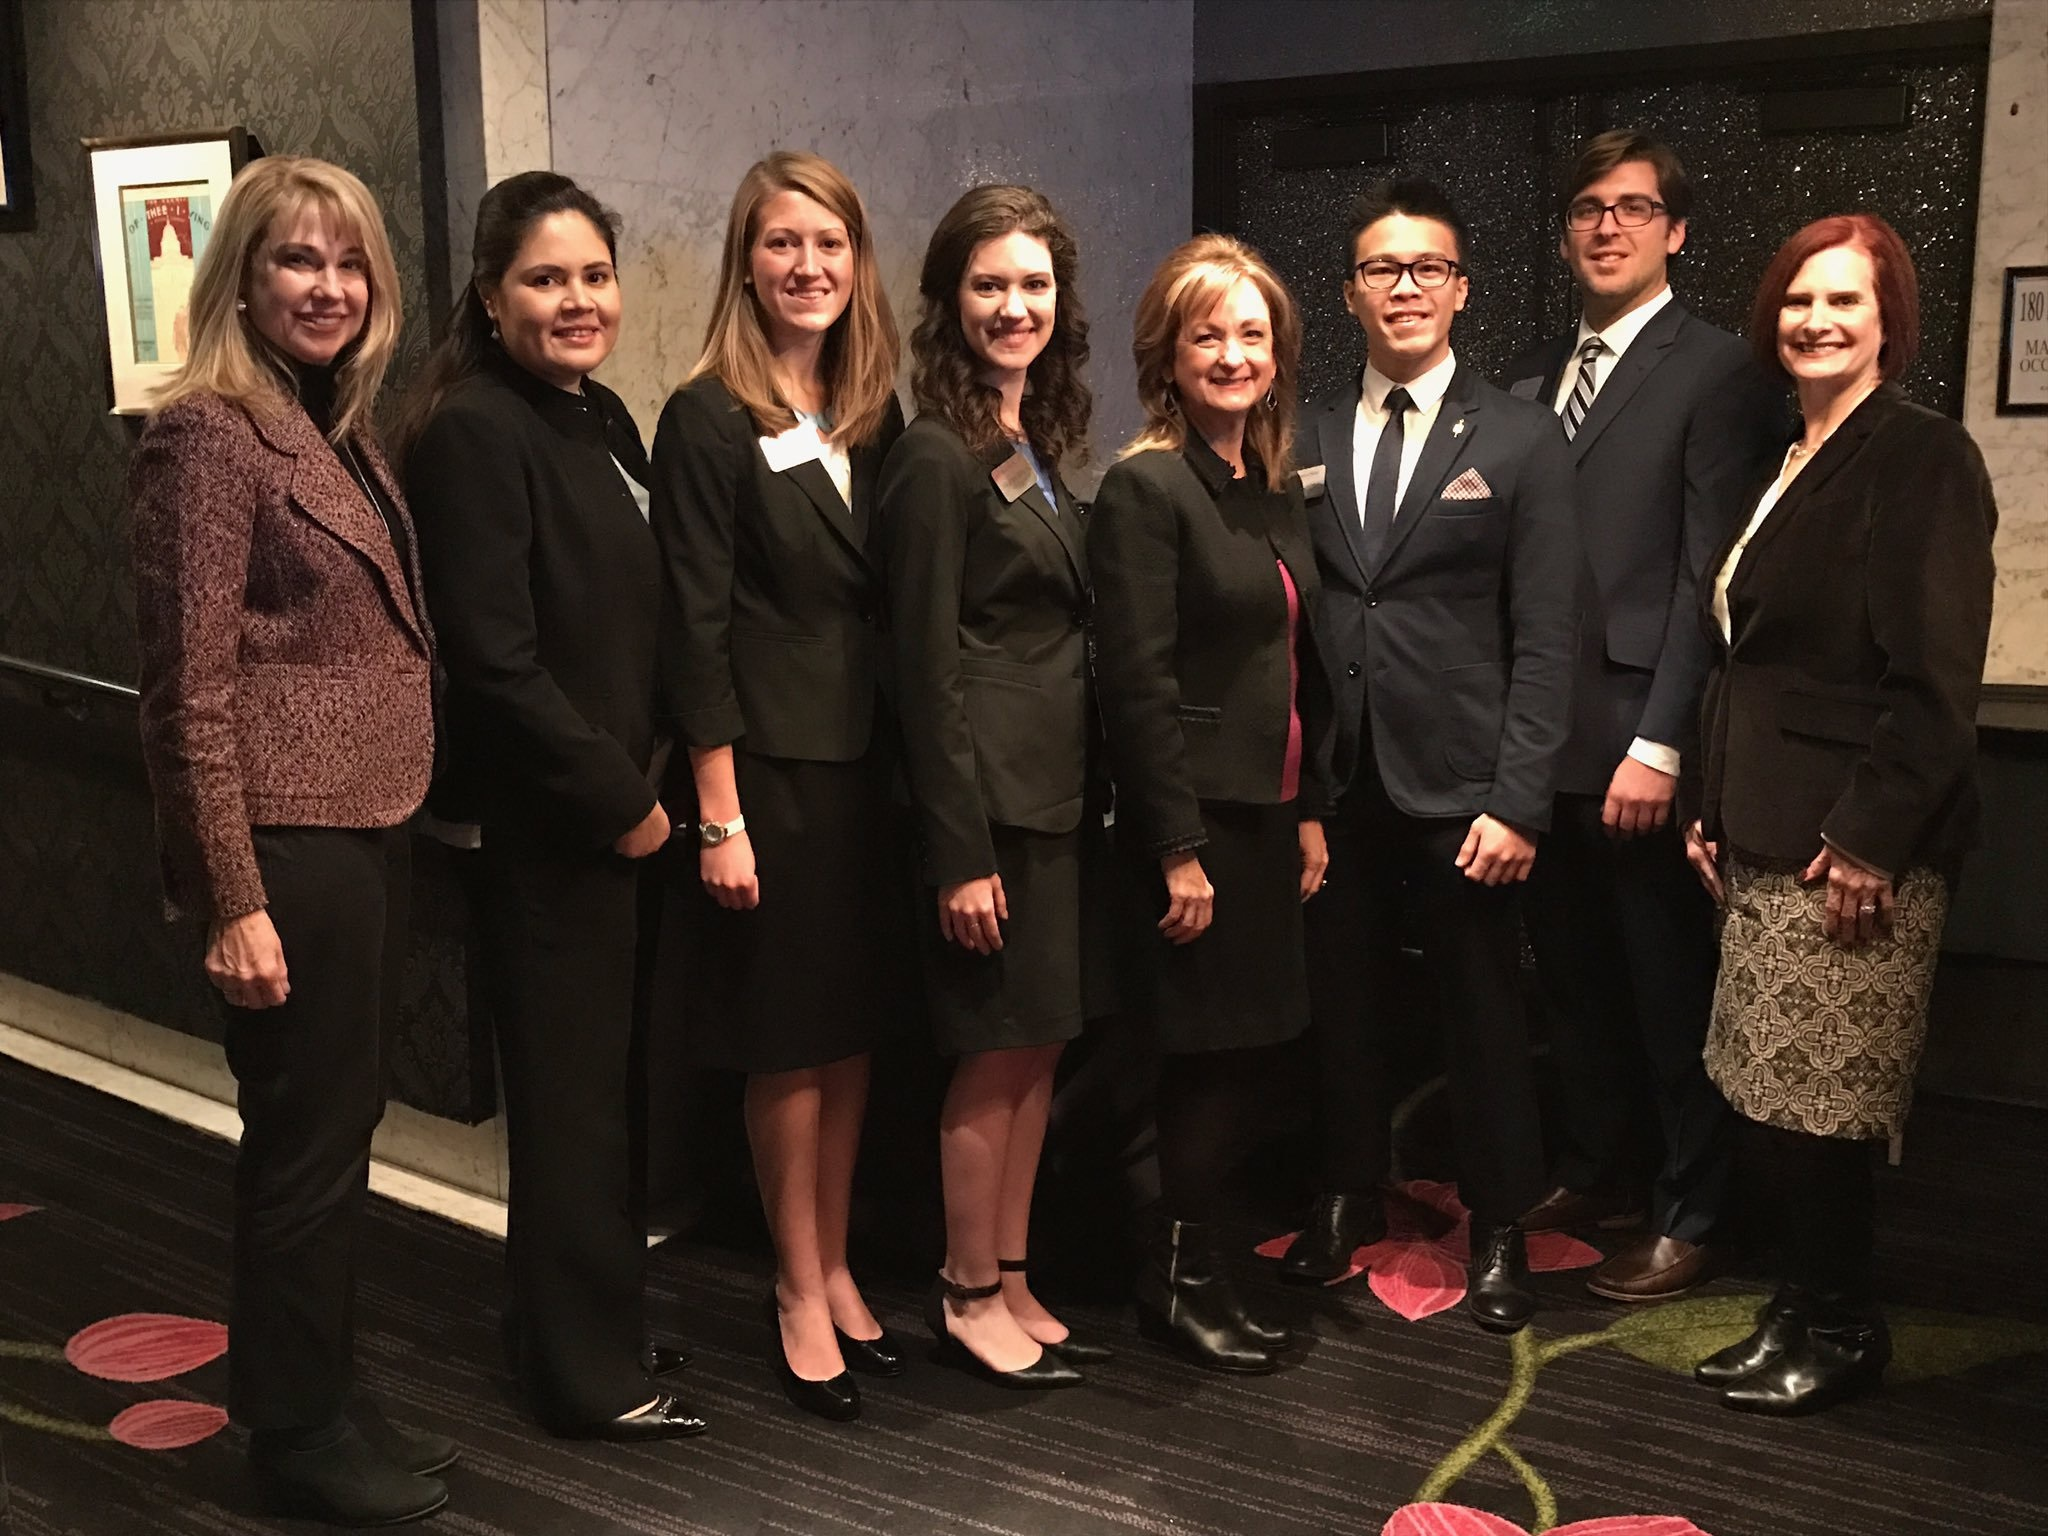 MBA Students take on experiential learning project with Hotel Nikko